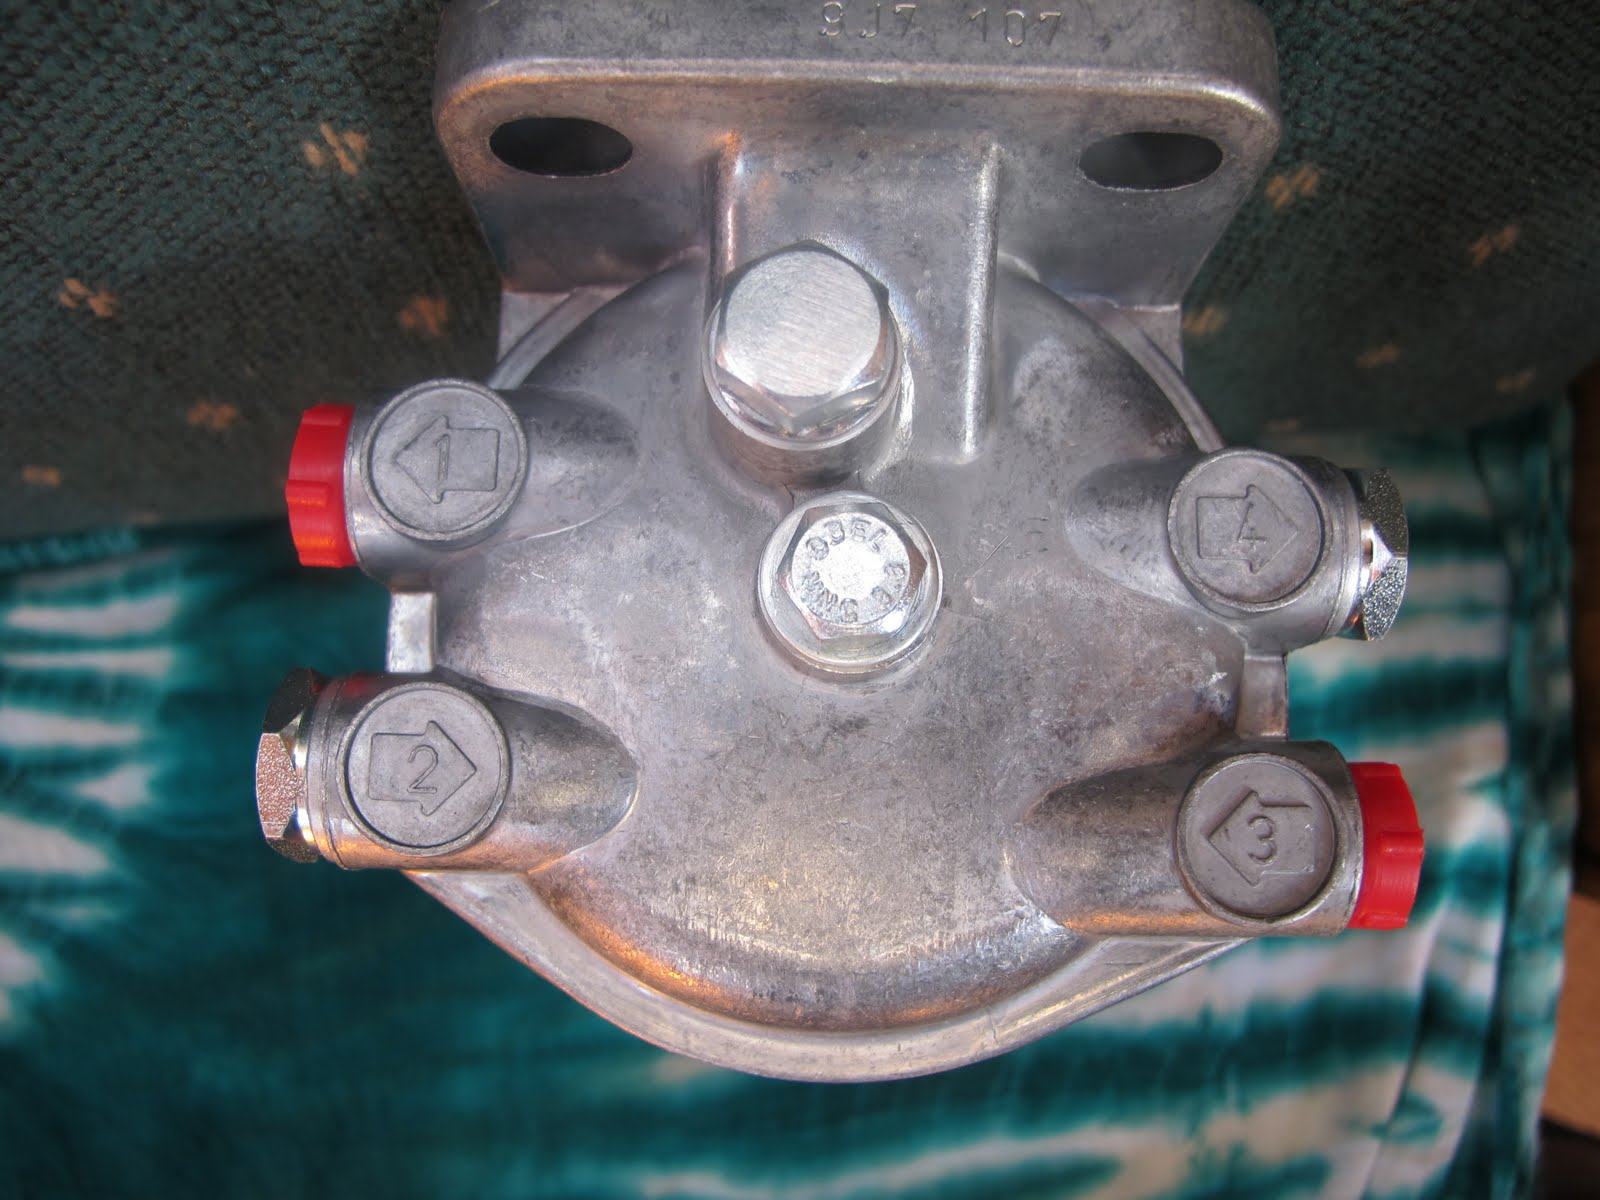 Ckd Boats Roy Mc Bride 22 11 09 29 Webb Fuel Filters Check Out The Top Cap And Closed Port On Left Sideit Leads To Central Which Will Feed Incoming Down Glass Bowlfrom Where It